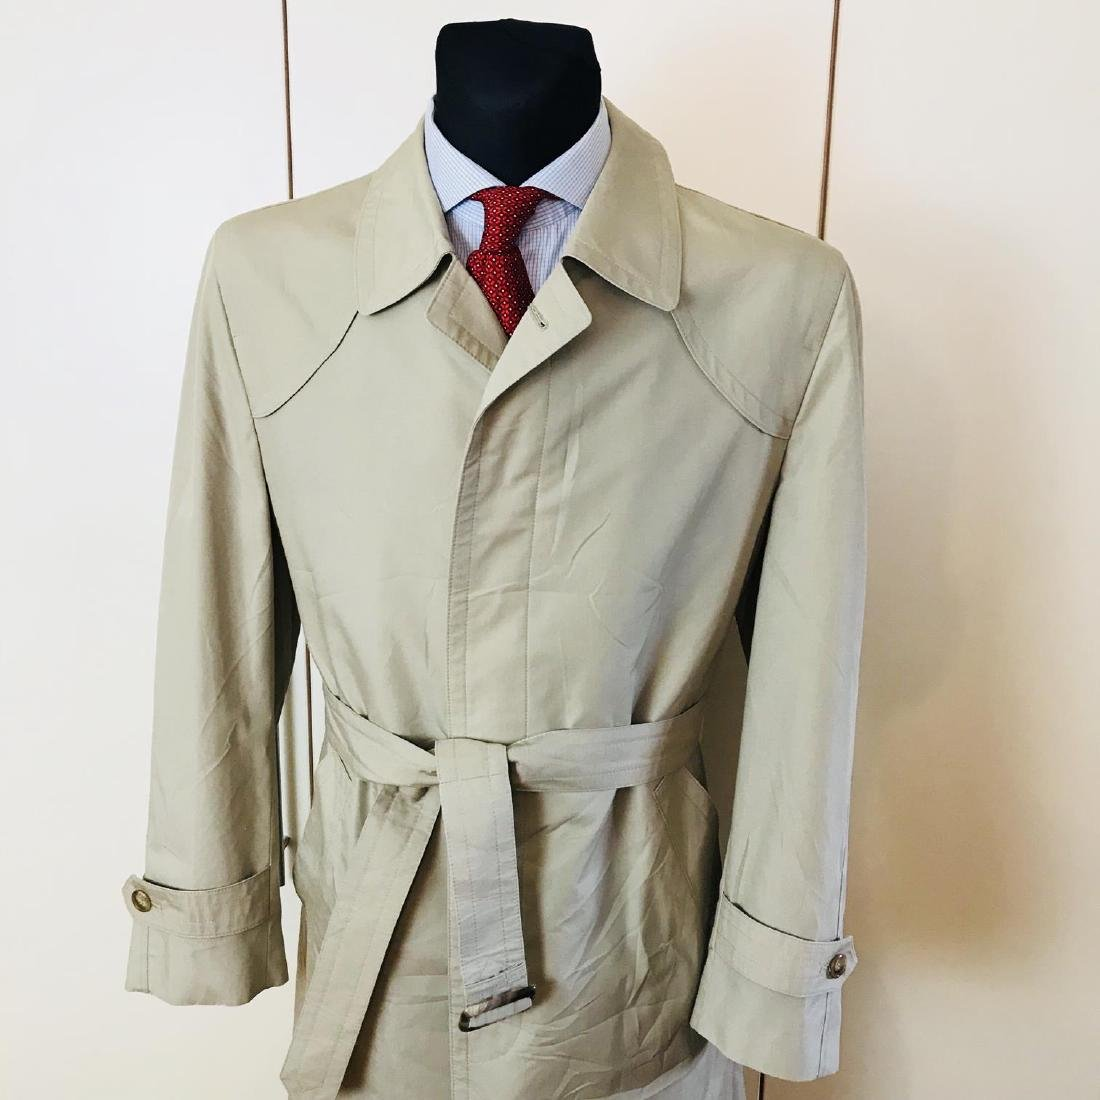 Vintage Men's Beige Trench Coat Size US 40 / EUR 50 - 2